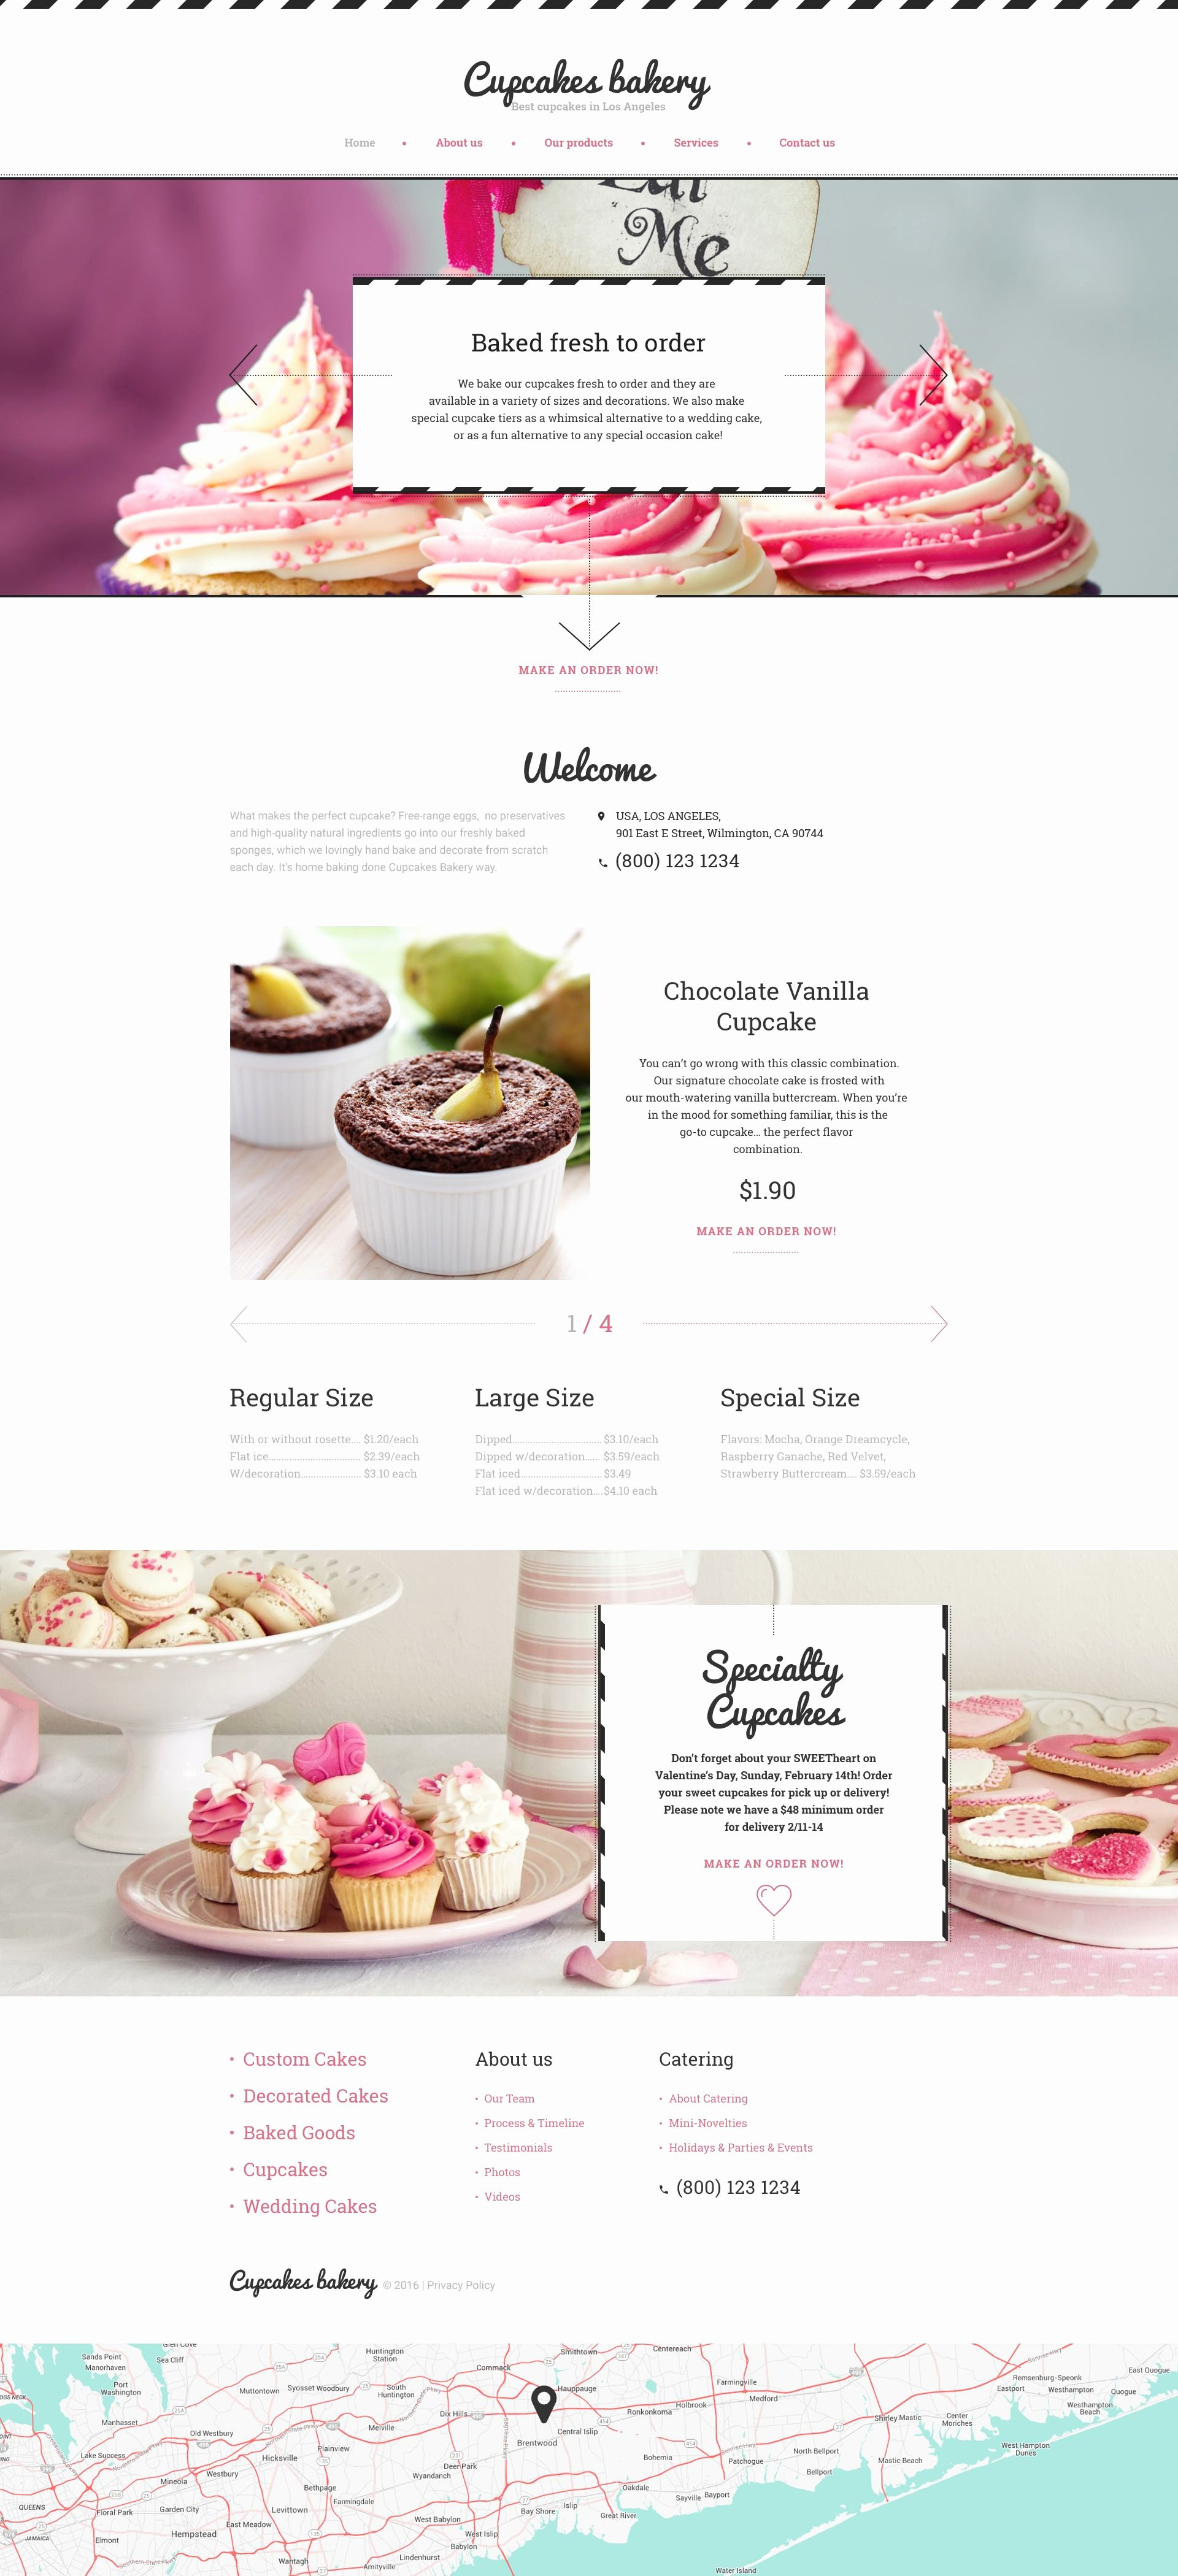 Free Bakery Menu Template Elegant Cupcakes Bakery Website Template